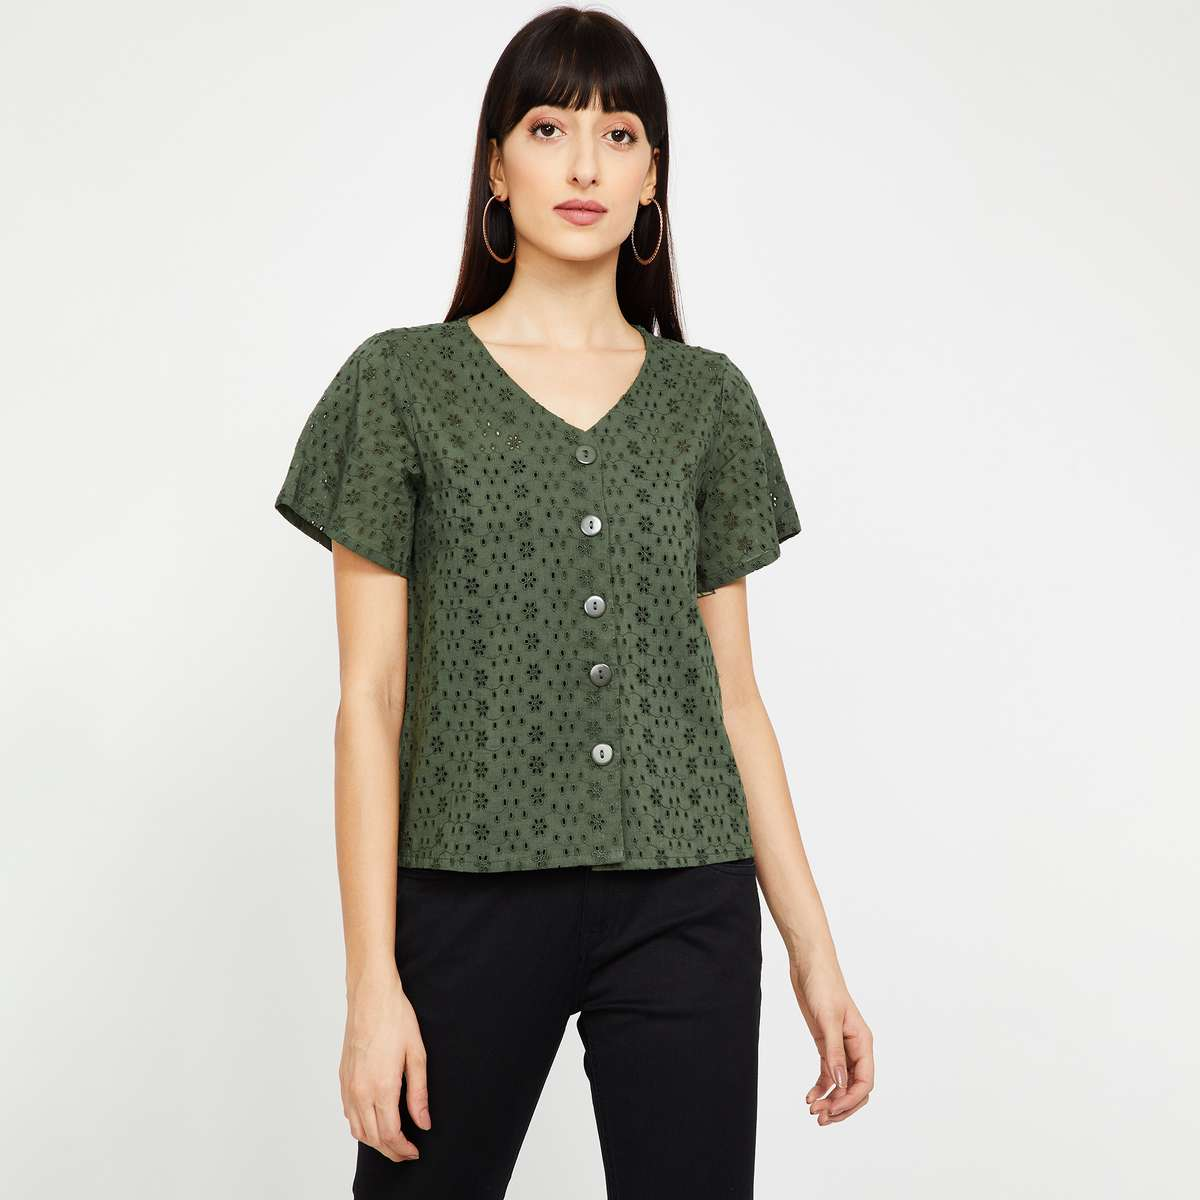 2.BOSSINI Embroidered Short Sleeves Shirt